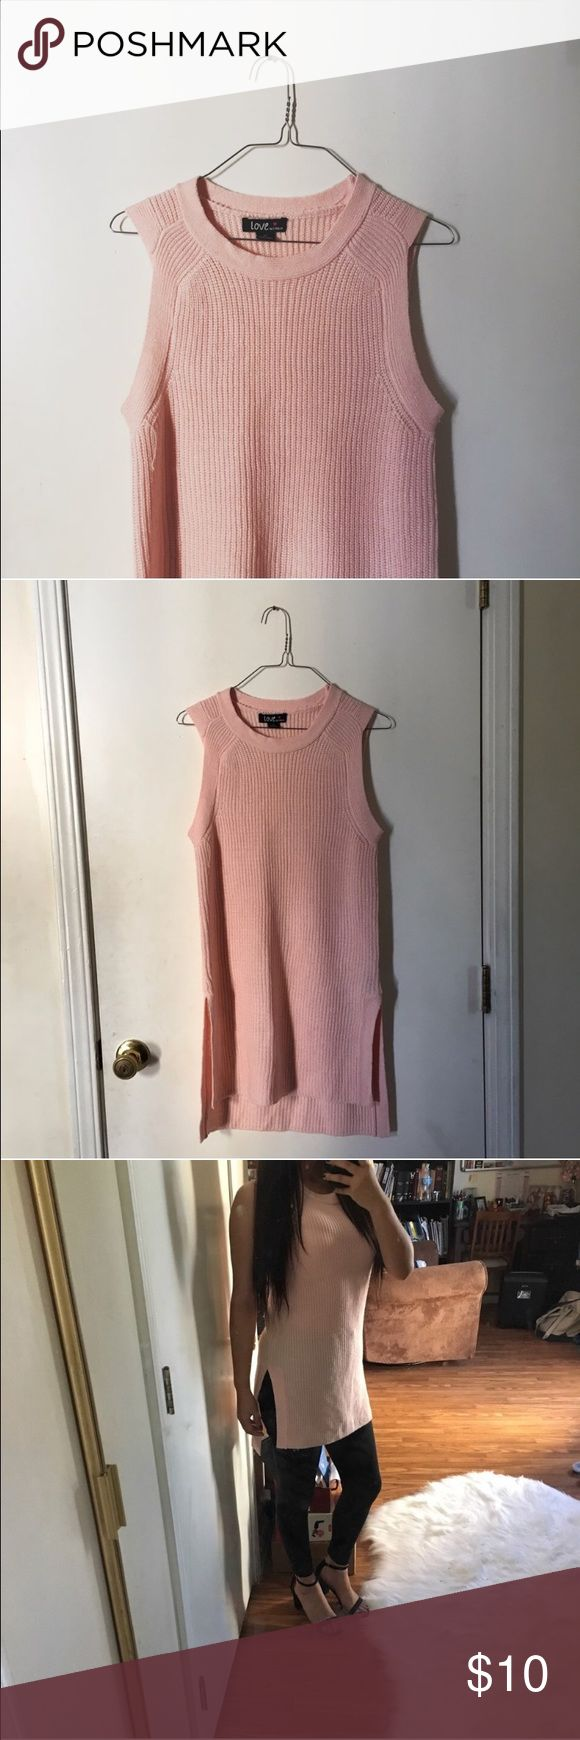 Sleeveless sweater shirt Brand new without tags baby pink ribbed sleeveless  shirt 😍 has slide slits and is very comfy ! Size M. Sweaters